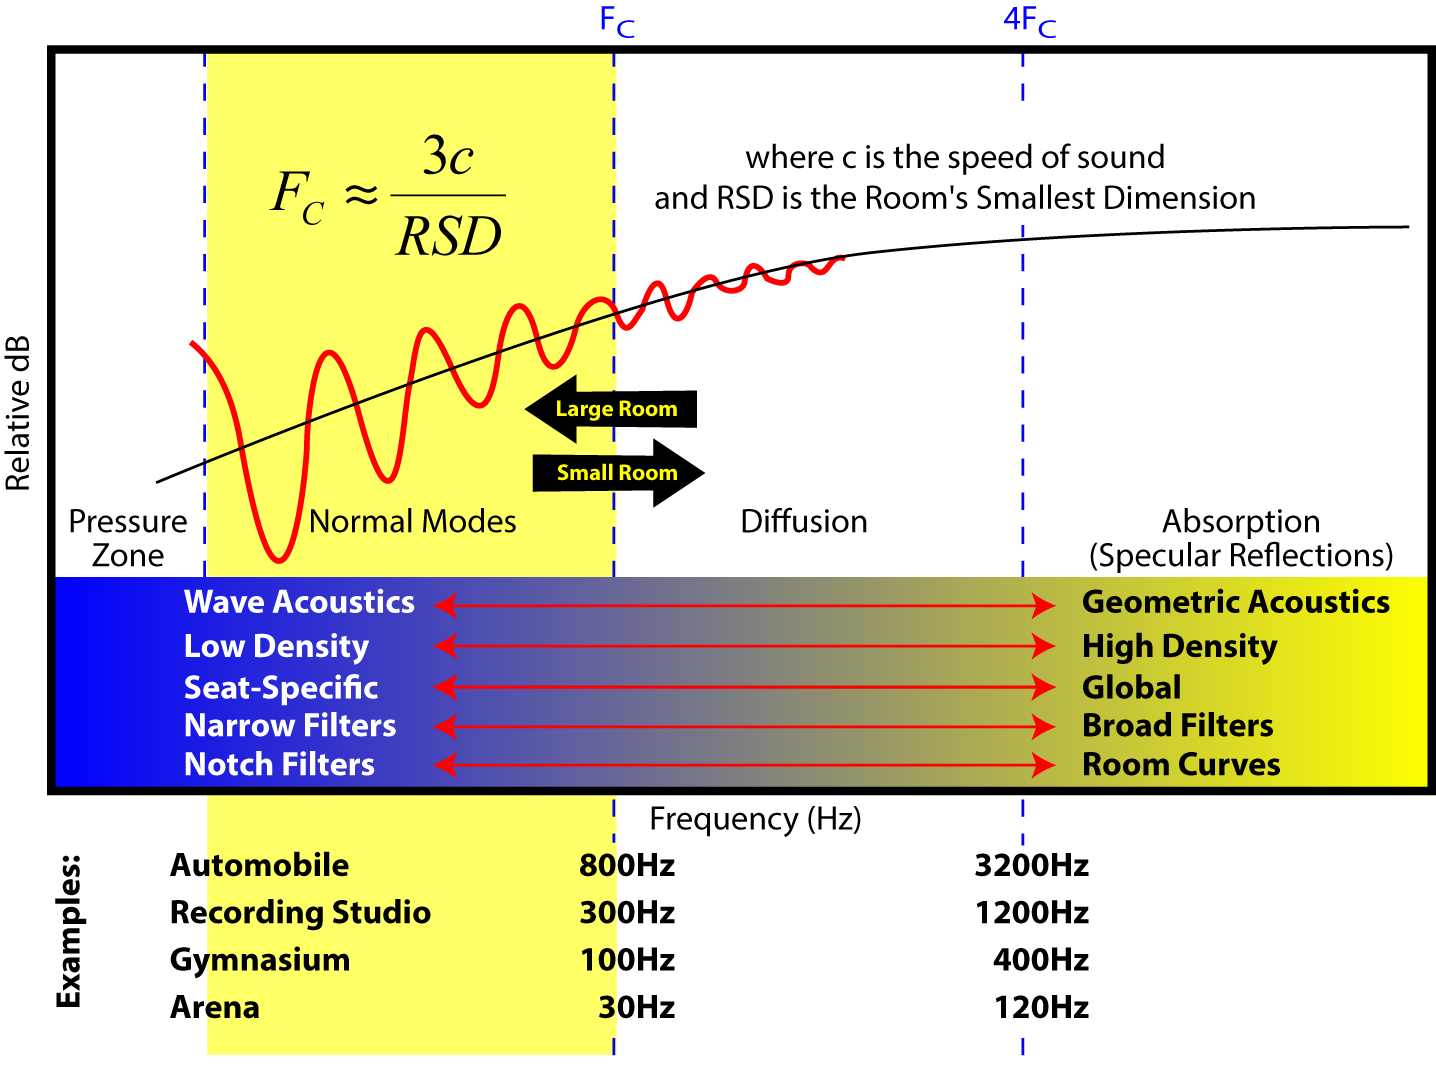 Figure 13 - The first step to addressing acoustics problems in any space is to determine FC. In small rooms the normal modes extend well up into the voice range. In large spaces they may only affect the subwoofer performance.